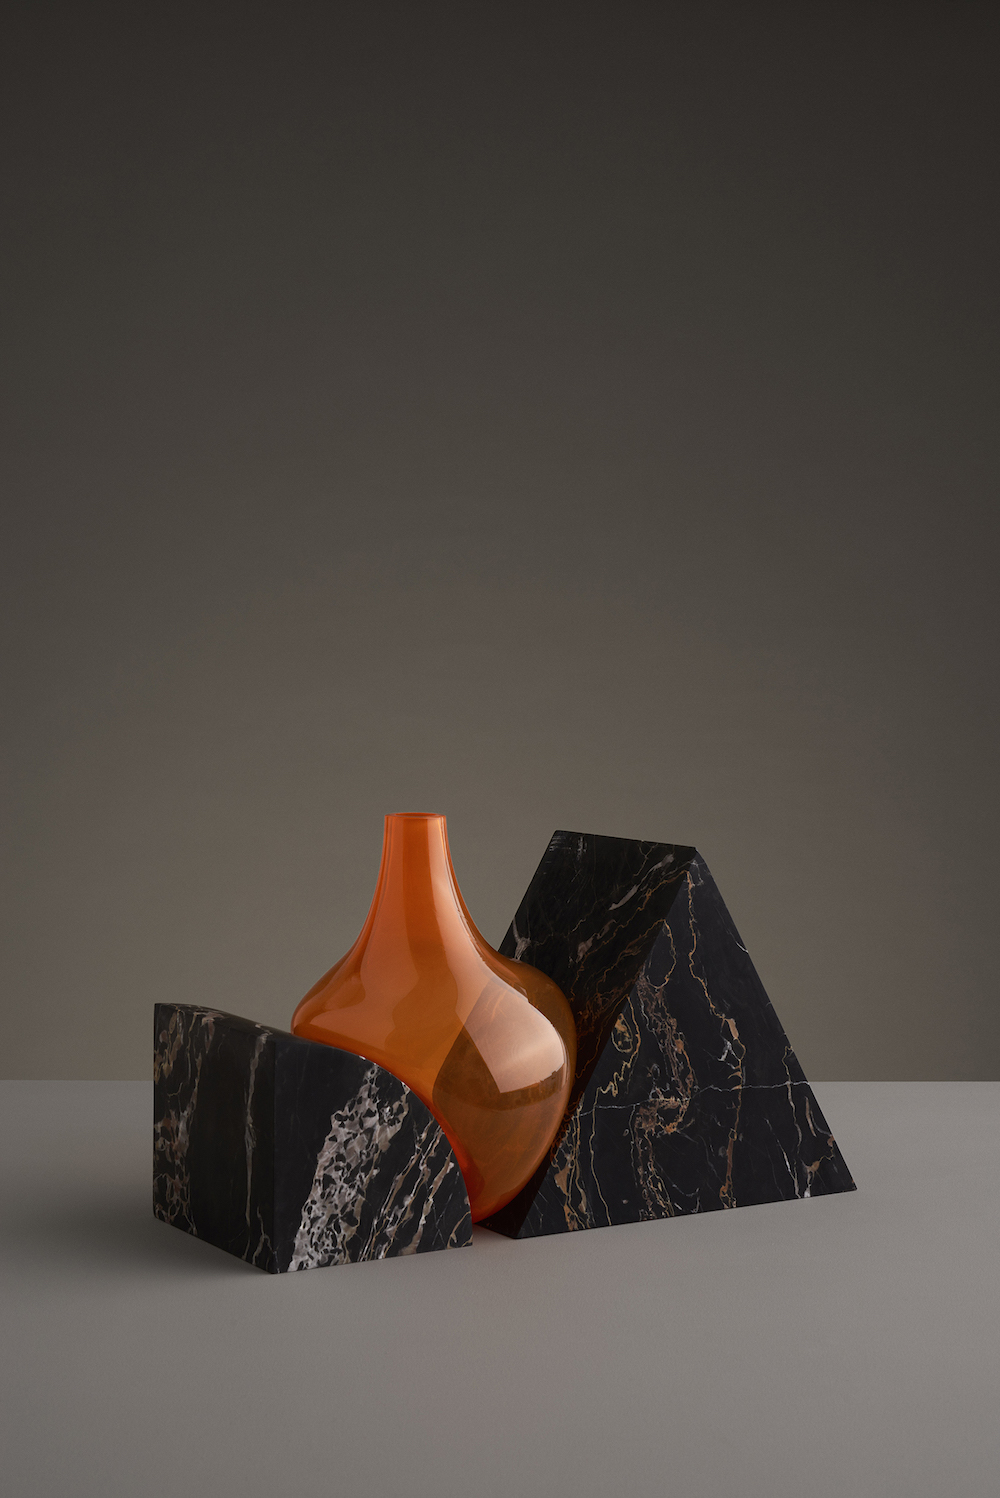 Vase Indefinite Model S&L Mixed Credits/ ©Erik Olovsson Courtesy of Galerie kreo